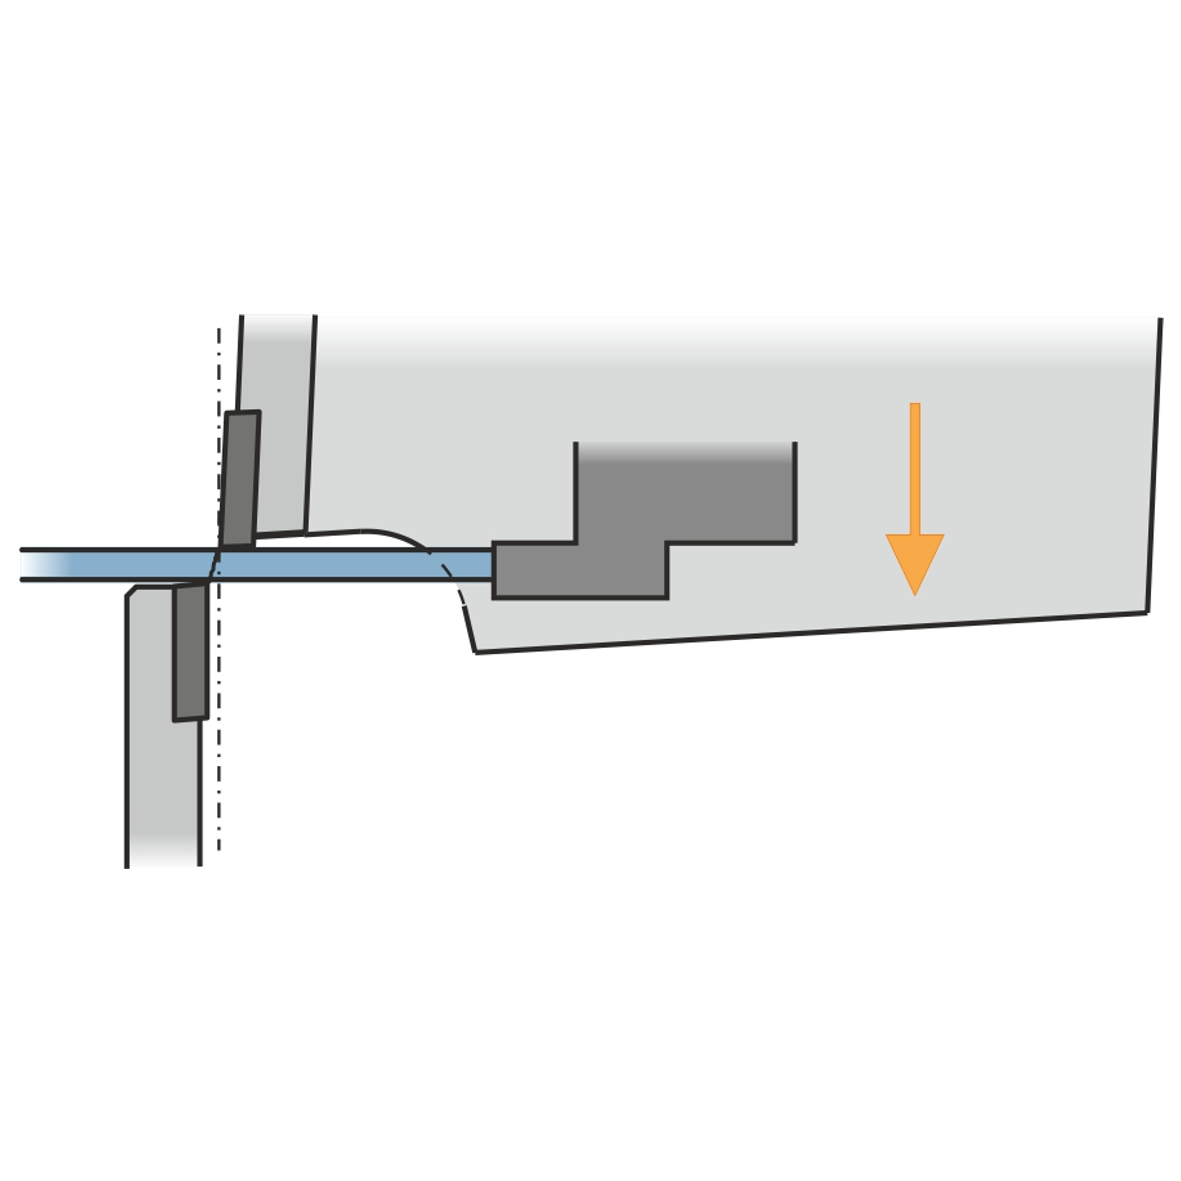 Oblique fractured cutting line